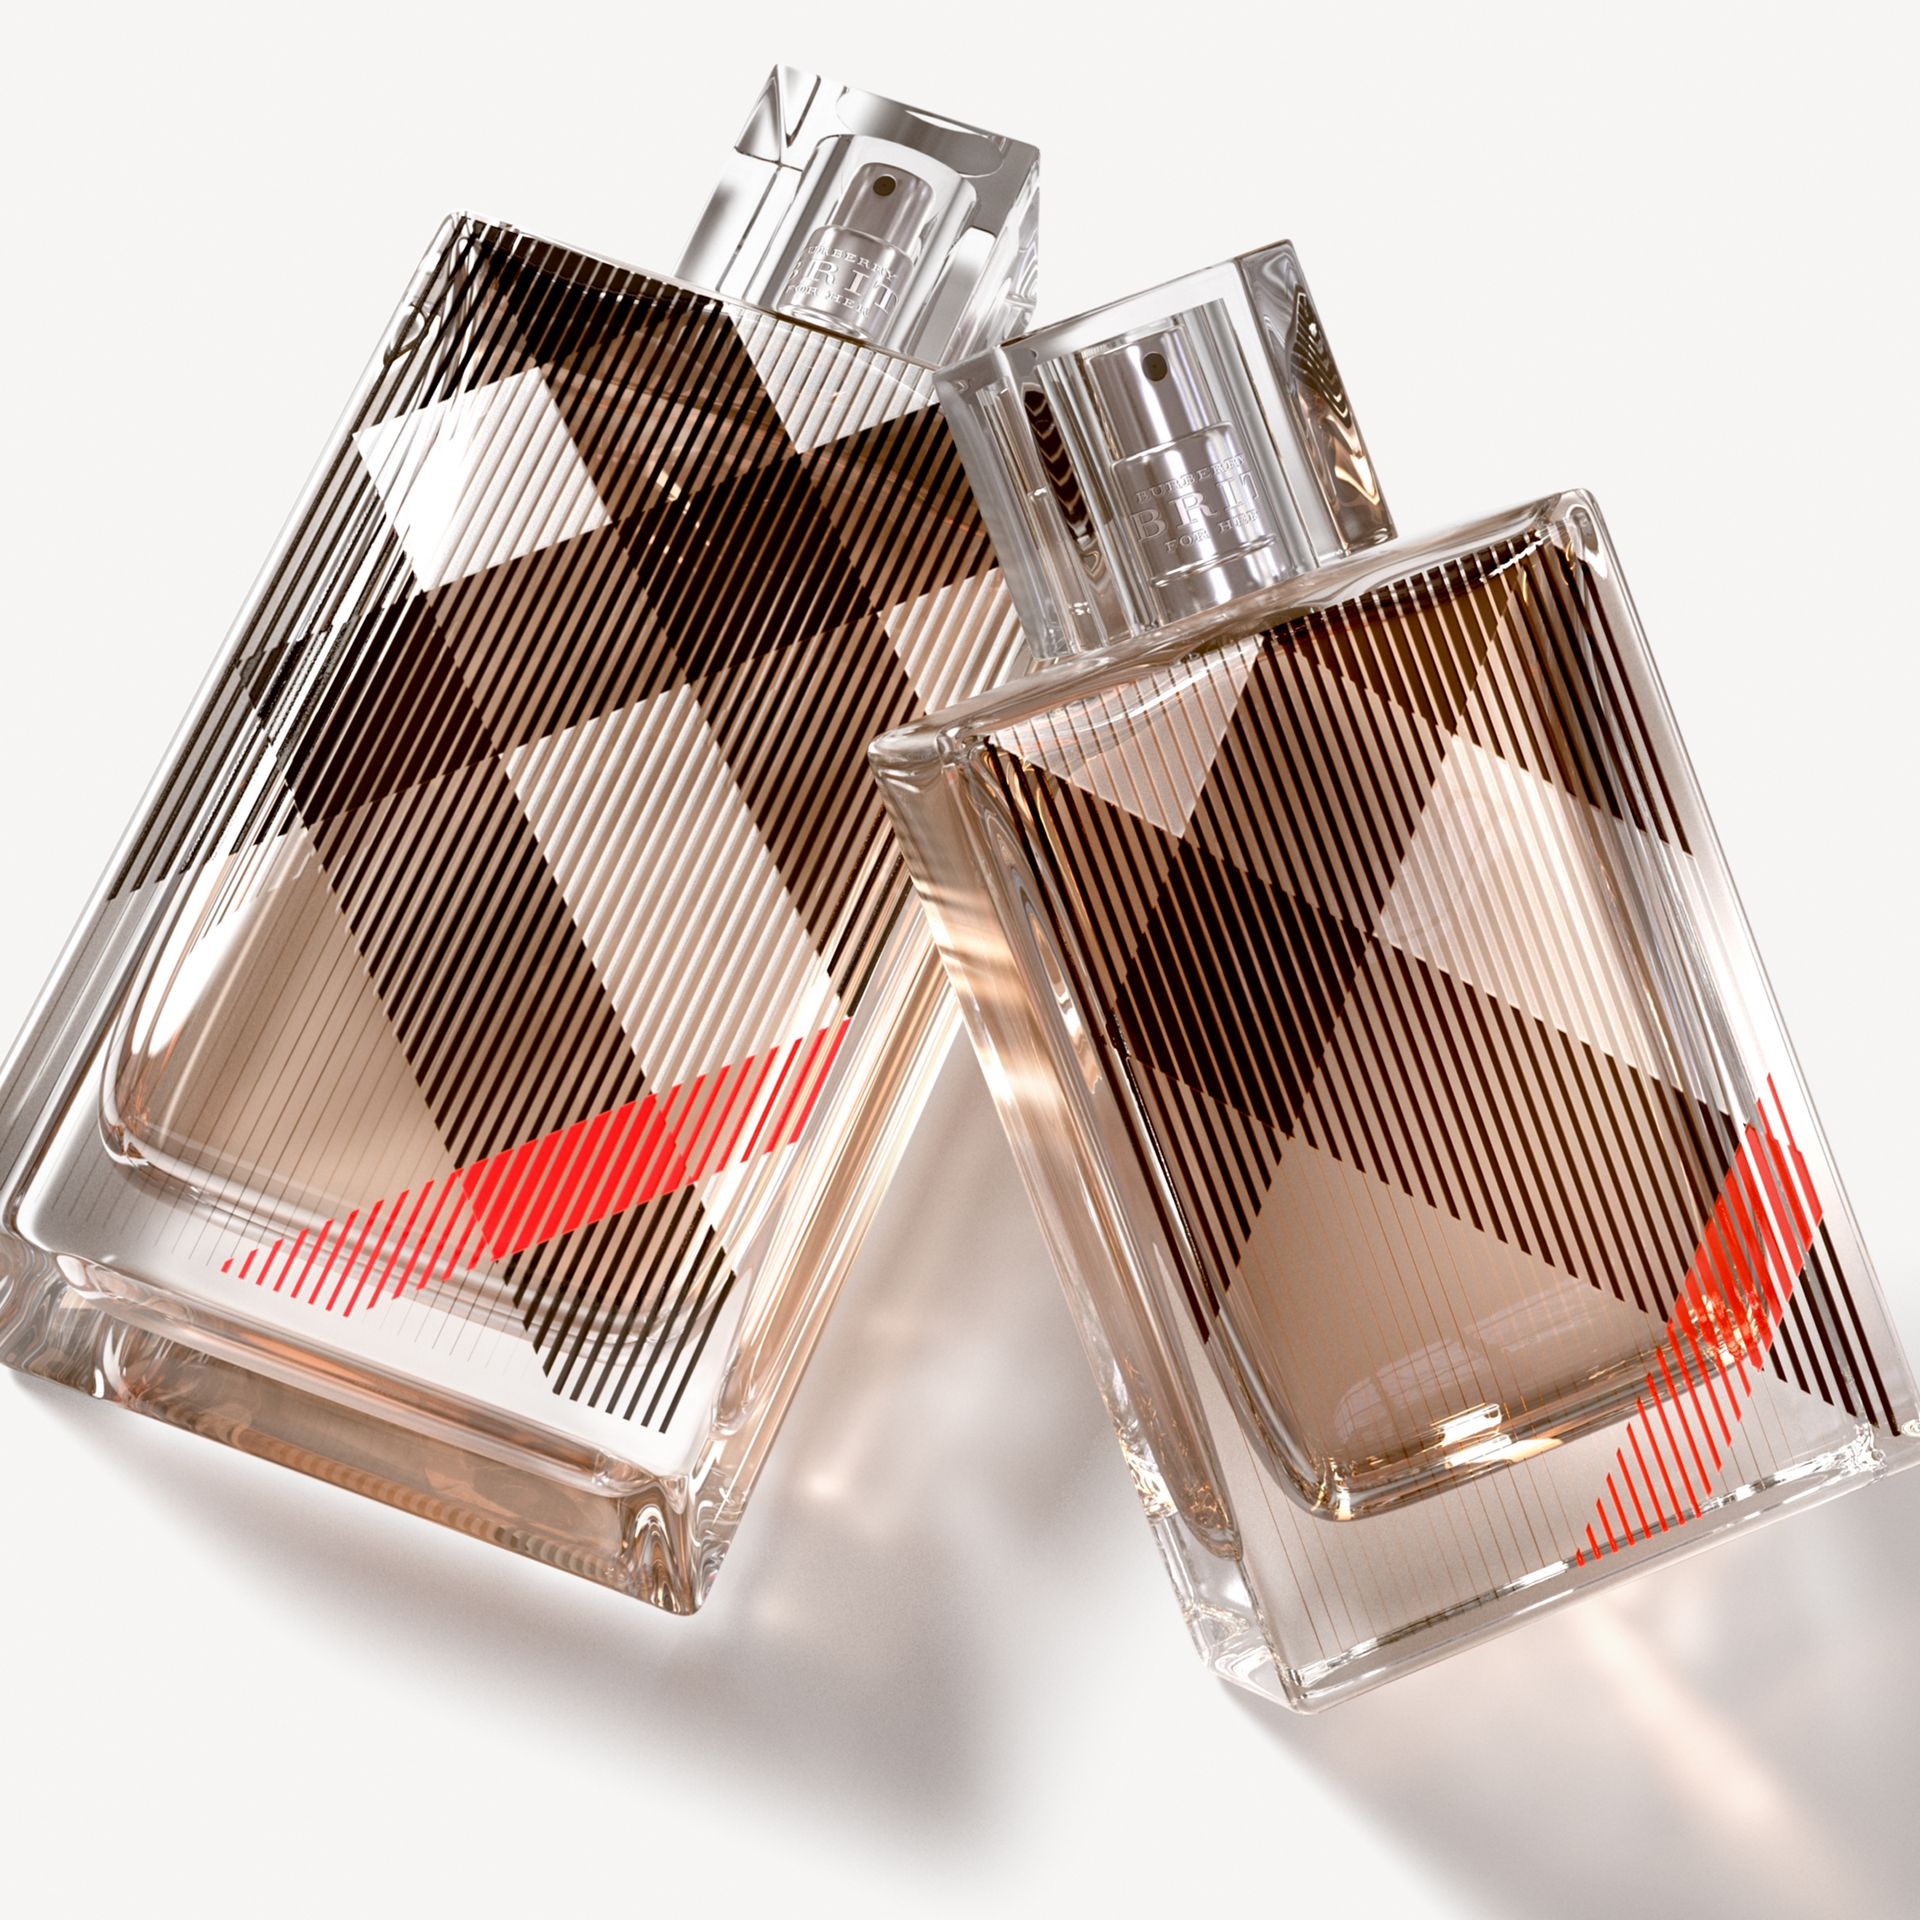 Eau de Parfum Burberry Brit for Her 100 ml - Femme | Burberry - photo de la galerie 2